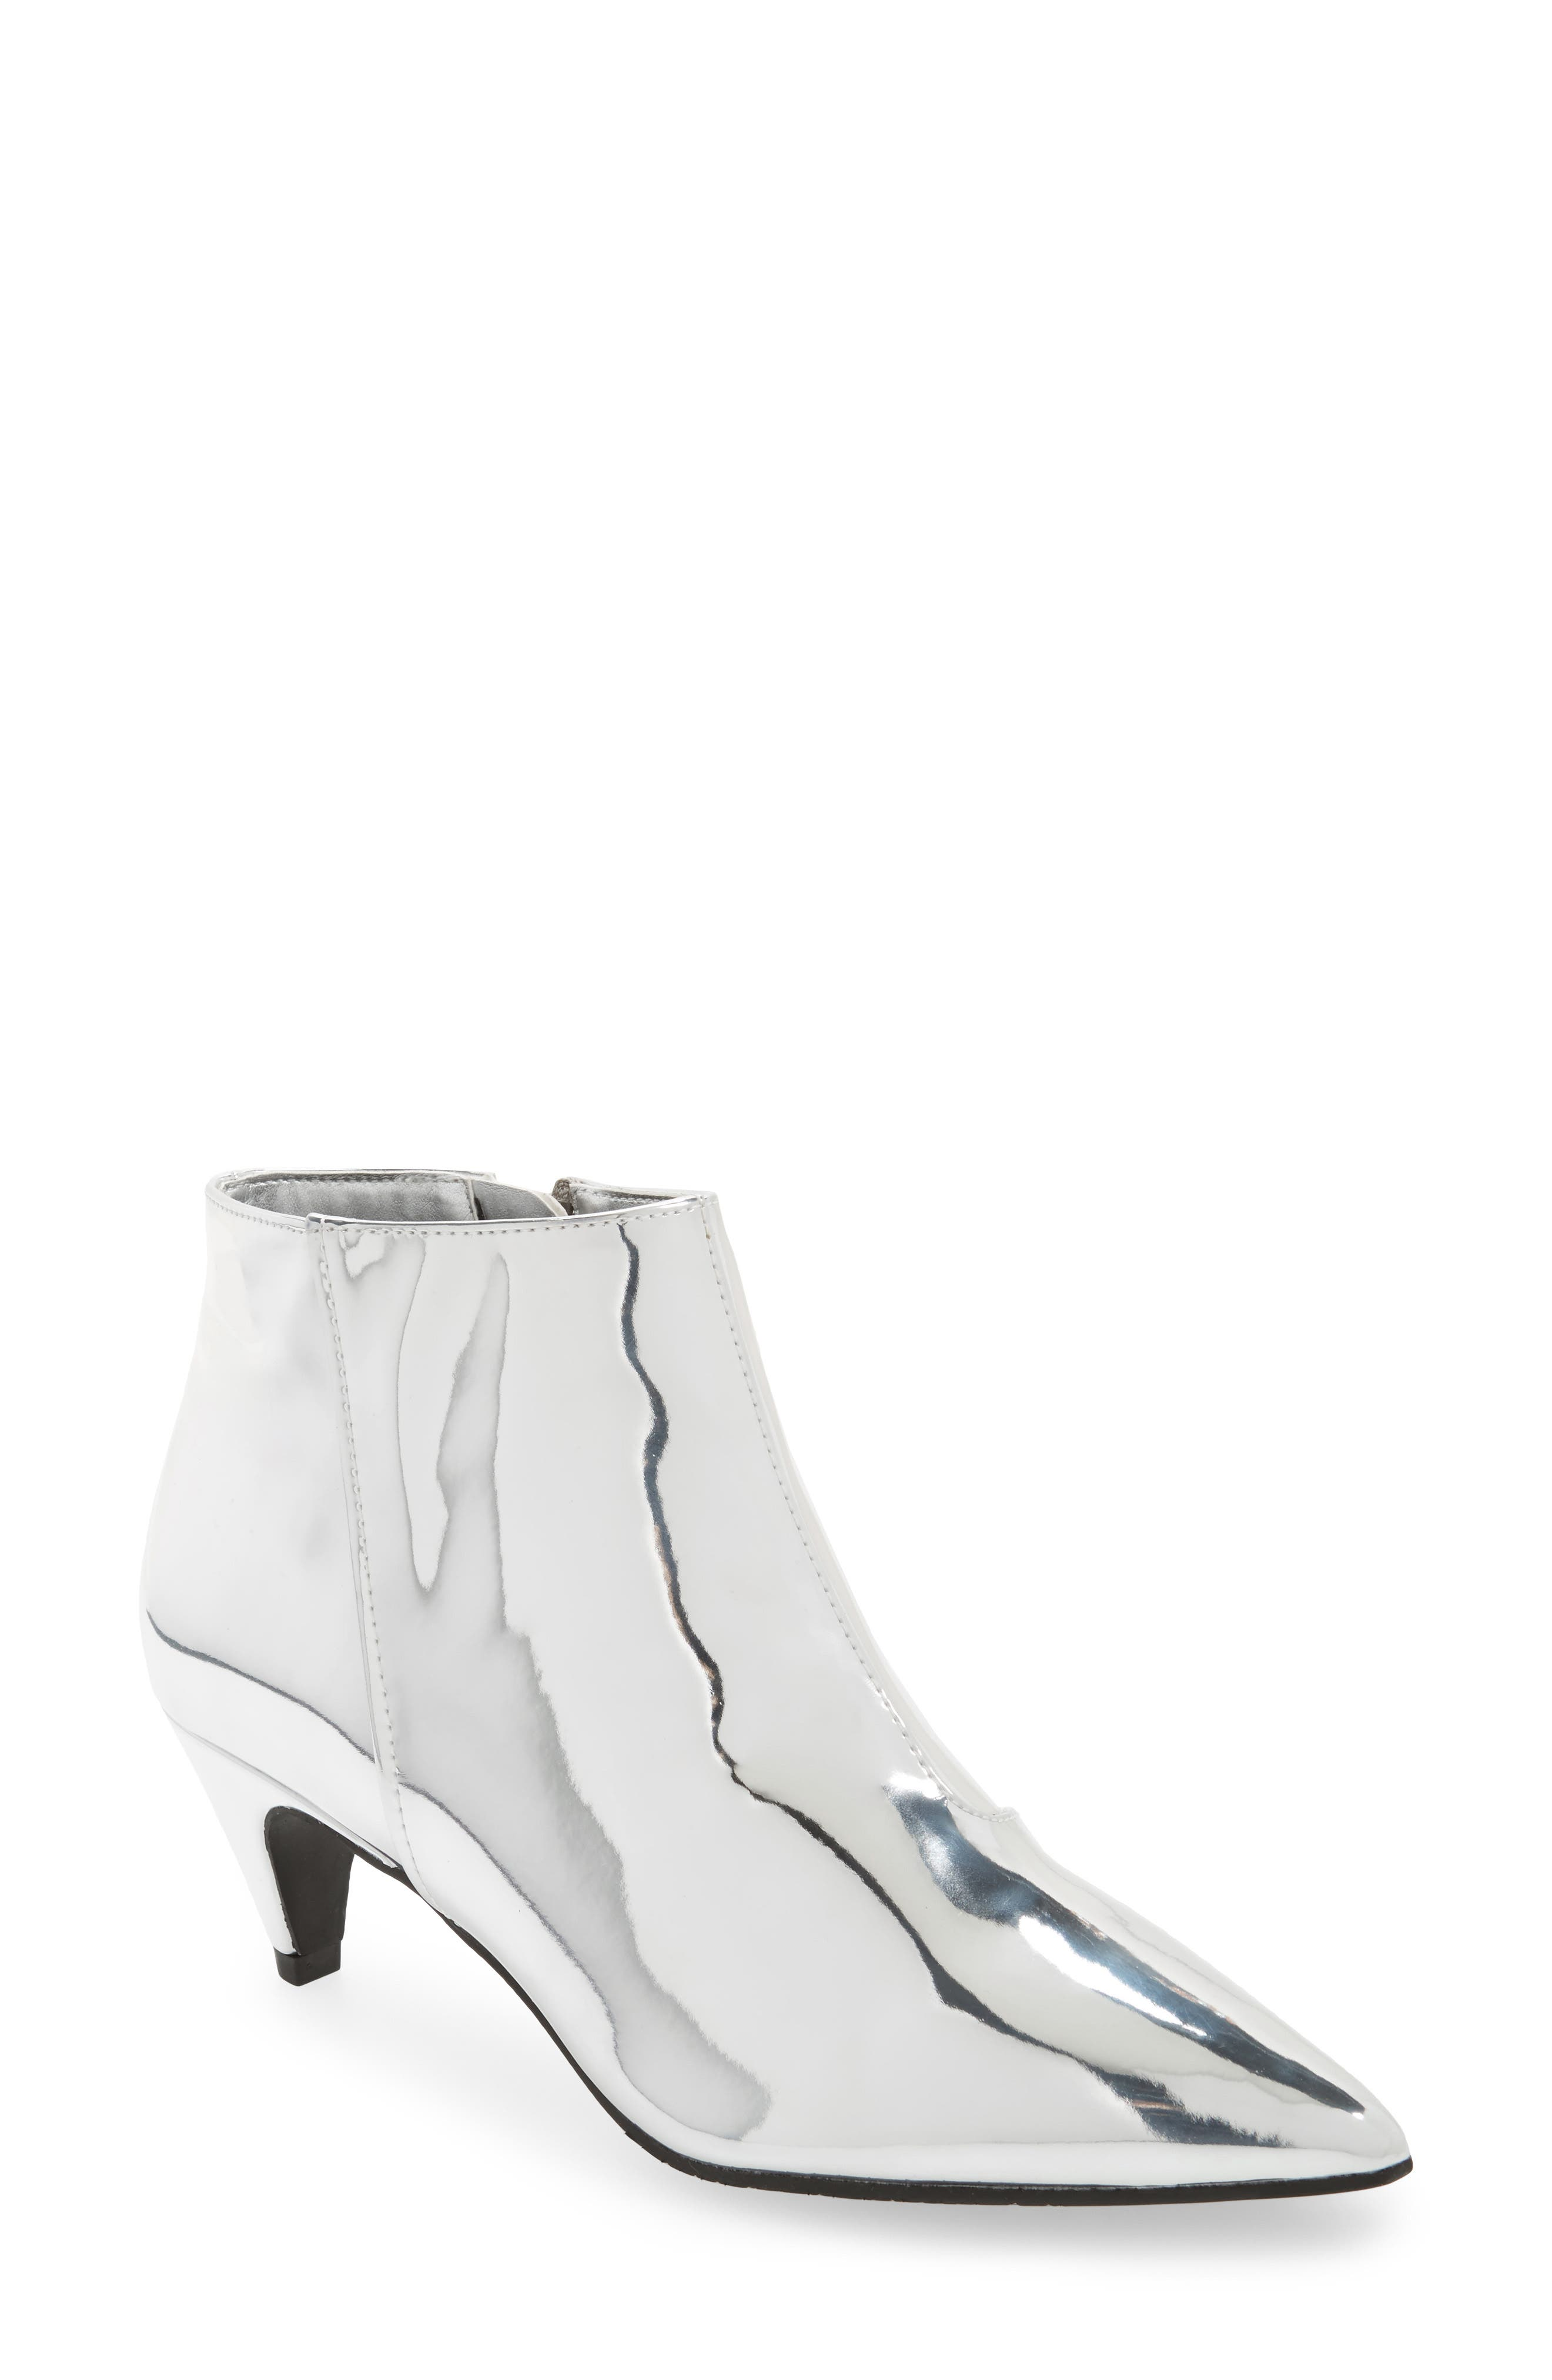 Major Pointy Toe Bootie,                             Main thumbnail 1, color,                             Silver Mirror Faux Leather